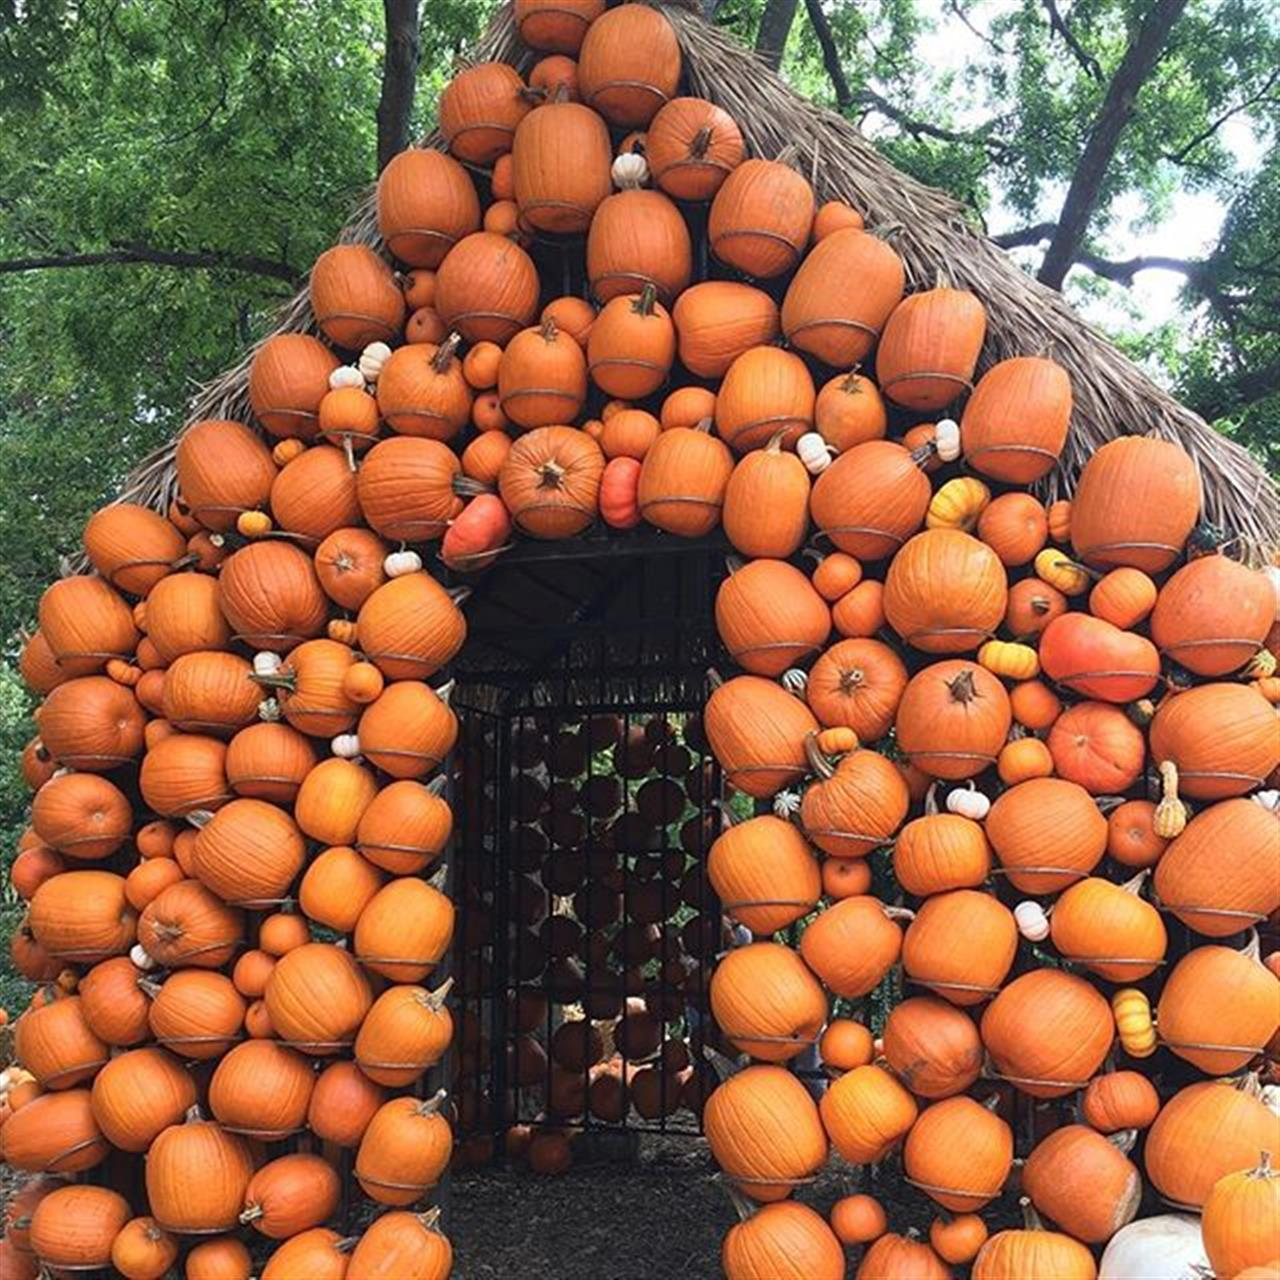 Visit @cheekwood for Cheeckwood Harvest and enjoy a celebration of all things fall for the whole family! ? #cheekwoodharvest #fall #autumn #middletennessee #parksathome